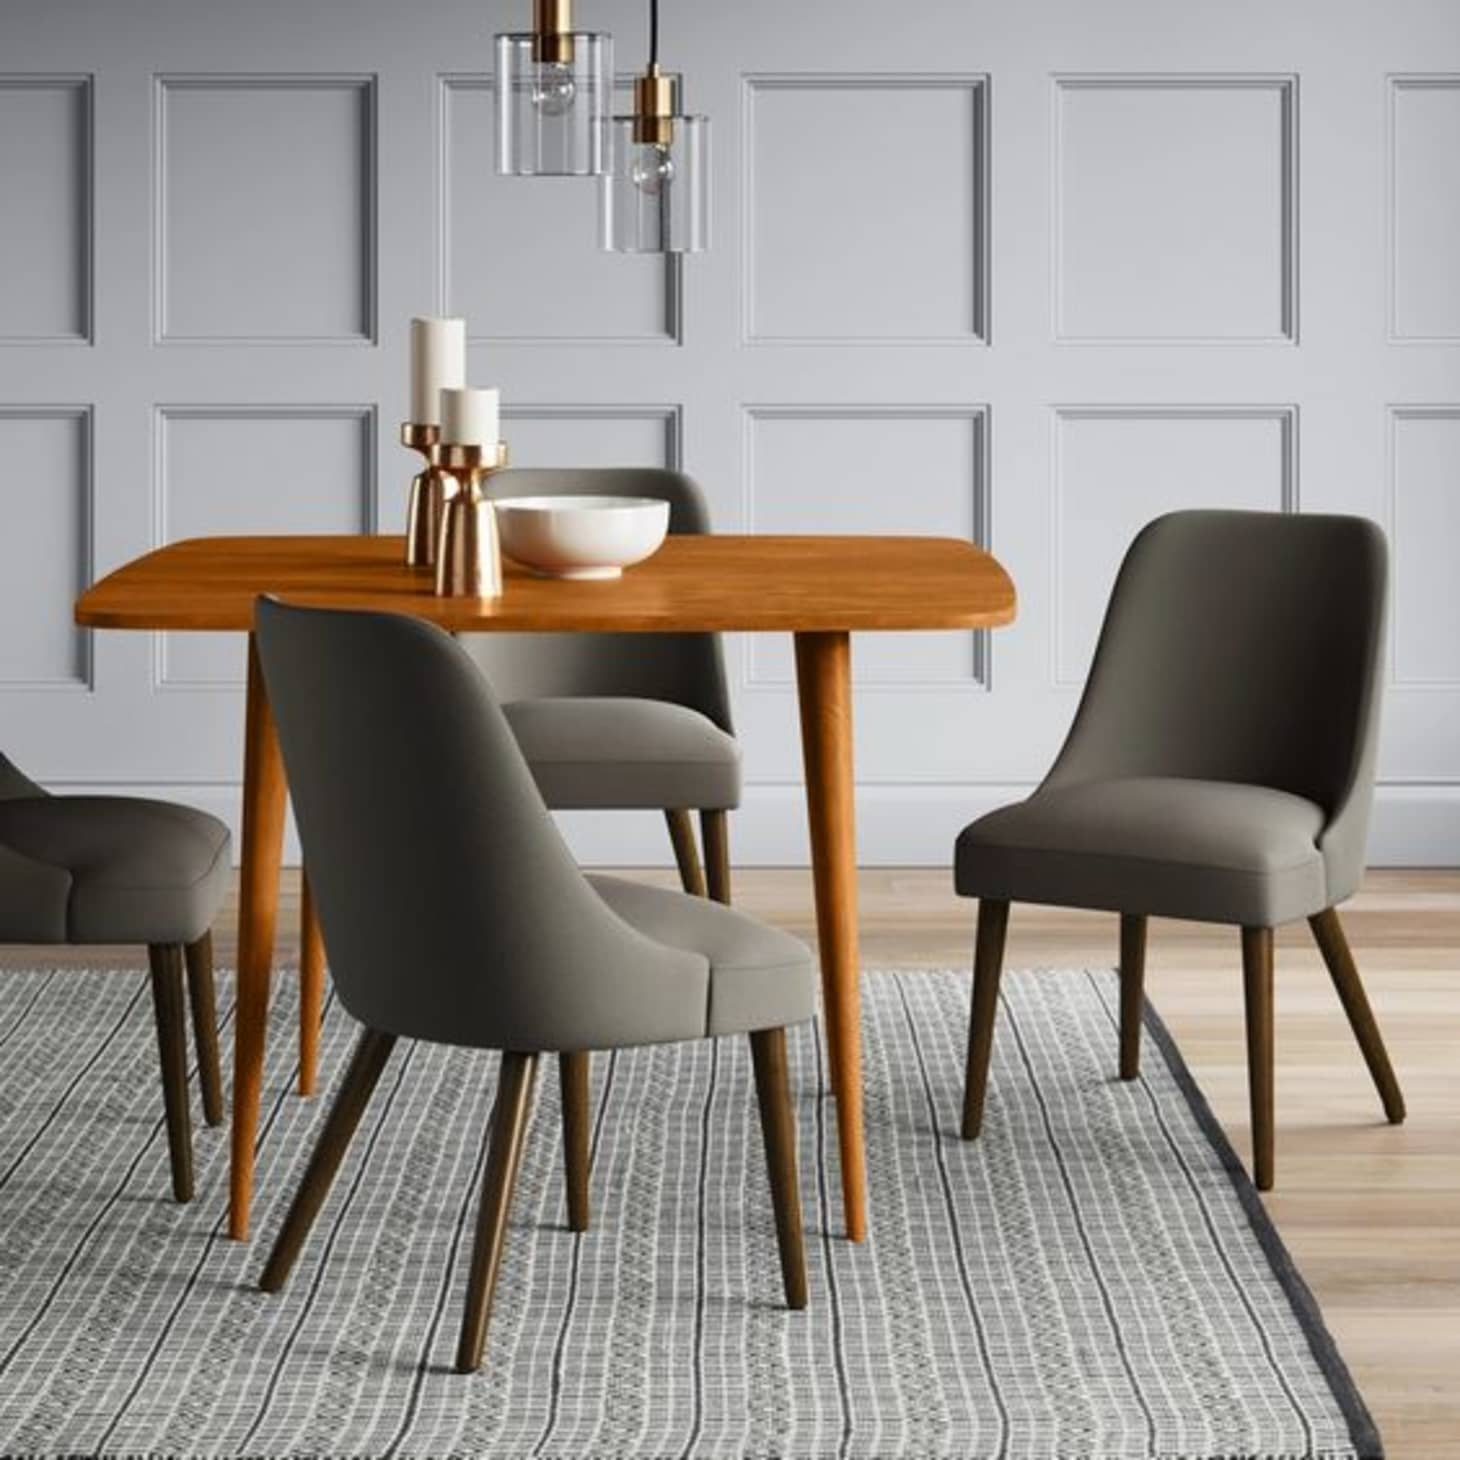 Prime Target Dining Chair Stool Sale Home Deals April 2019 Creativecarmelina Interior Chair Design Creativecarmelinacom